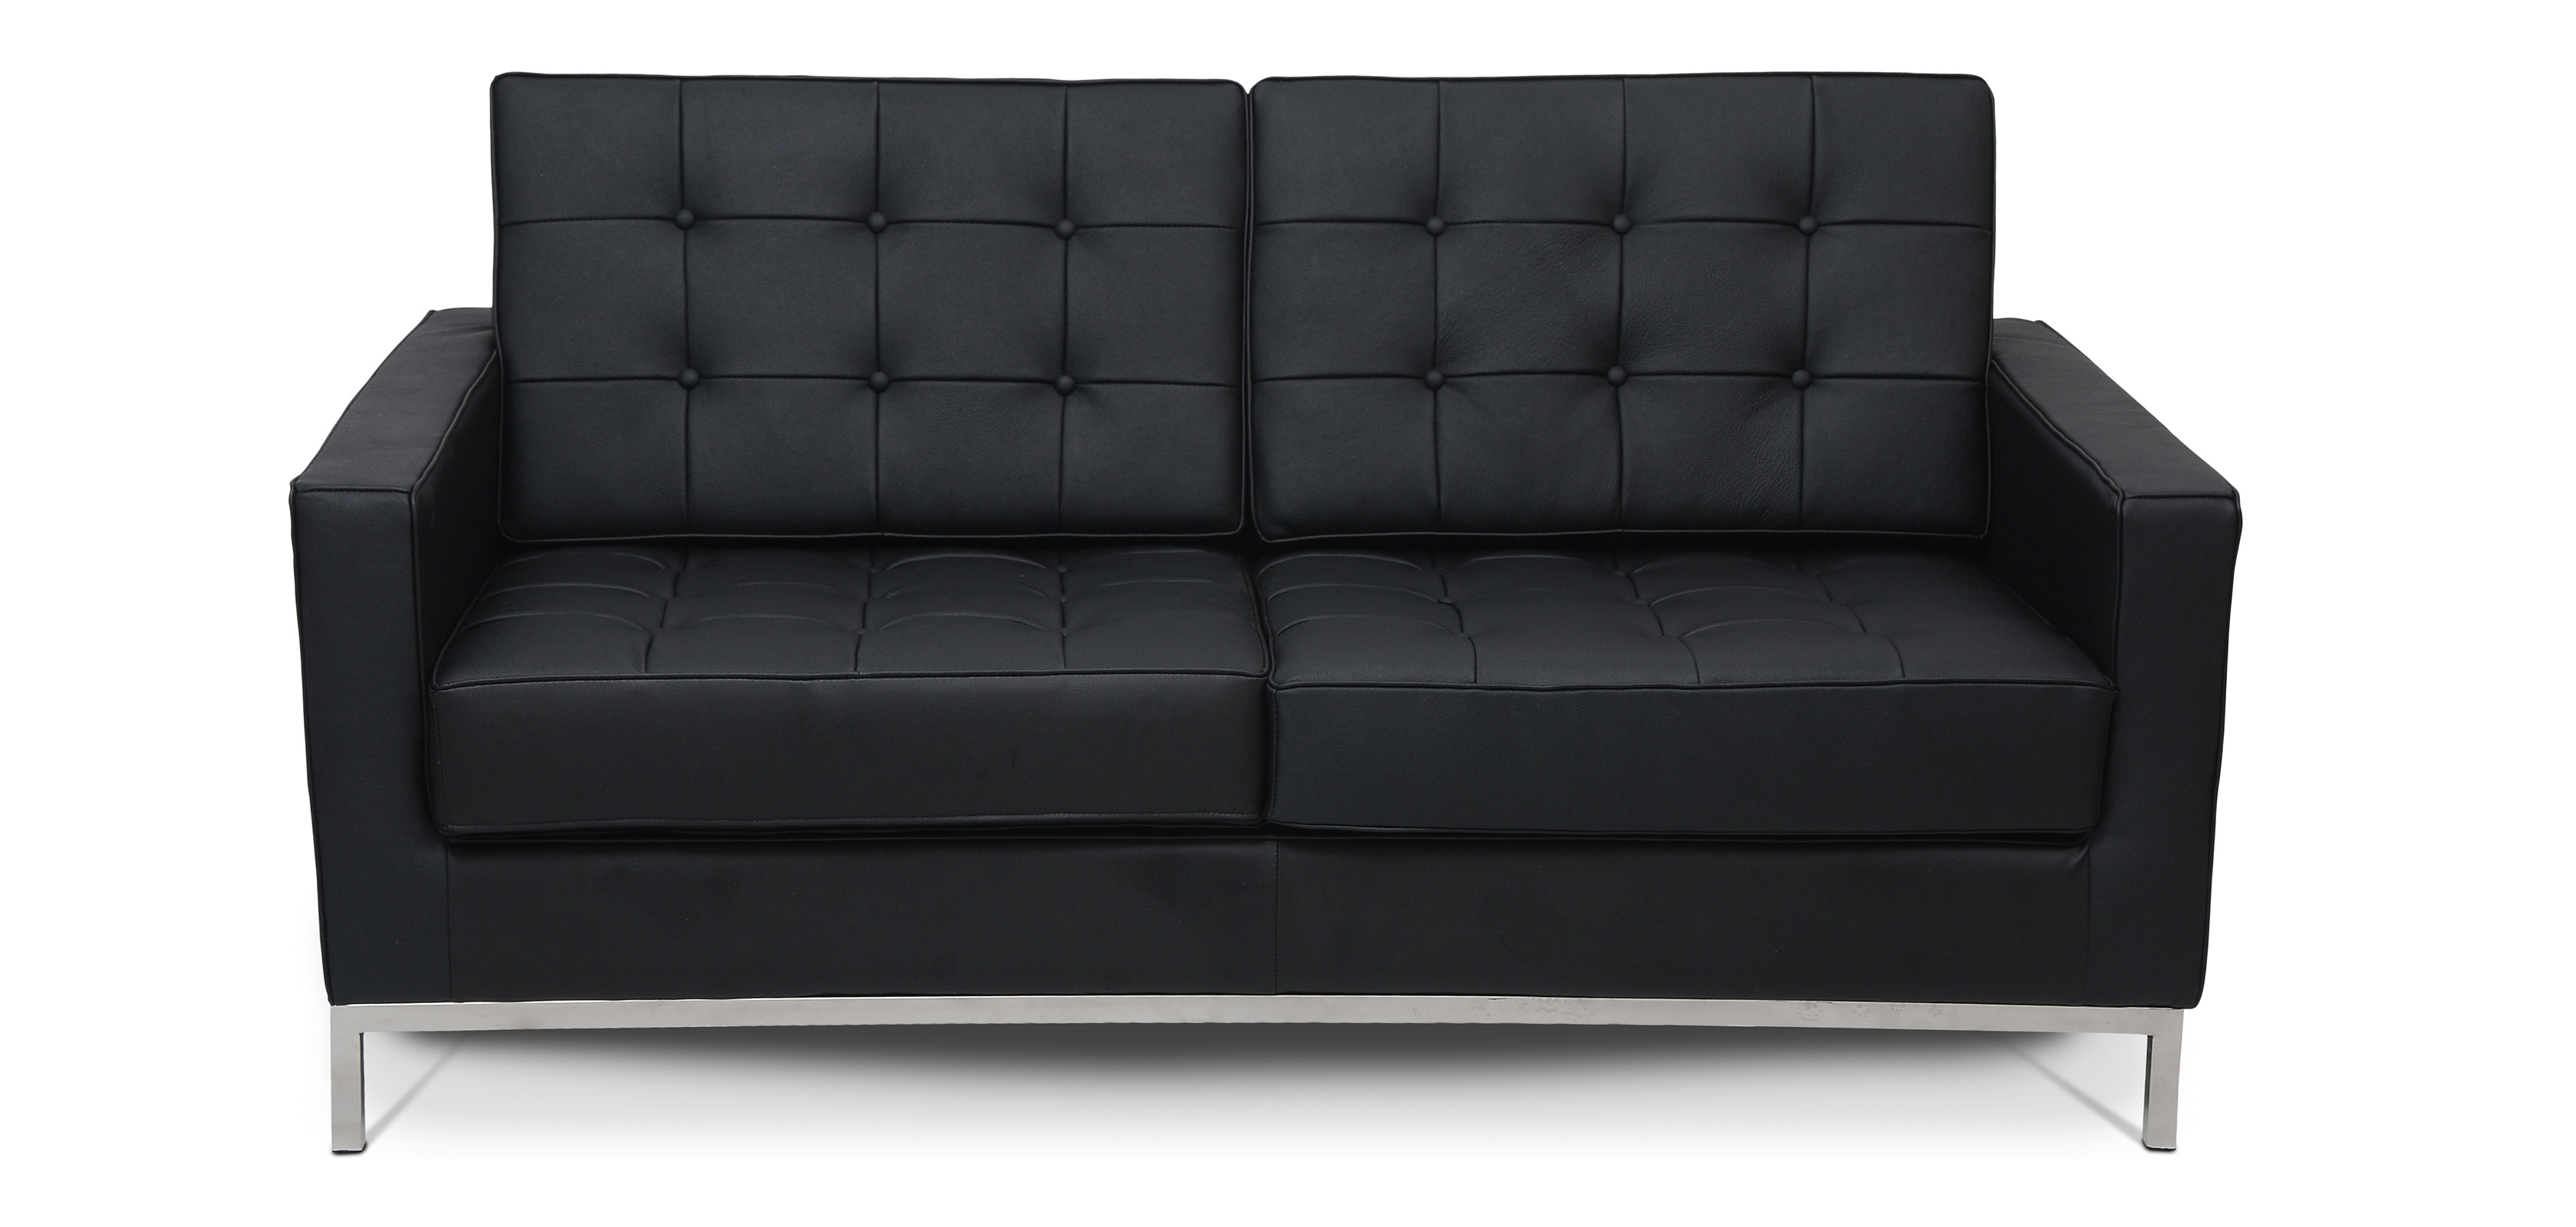 Sofas : Florence Knoll Sofa Grey Sofa' Click Clack Sofa' Florence Intended For Best And Newest Florence Knoll Wood Legs Sofas (View 15 of 20)